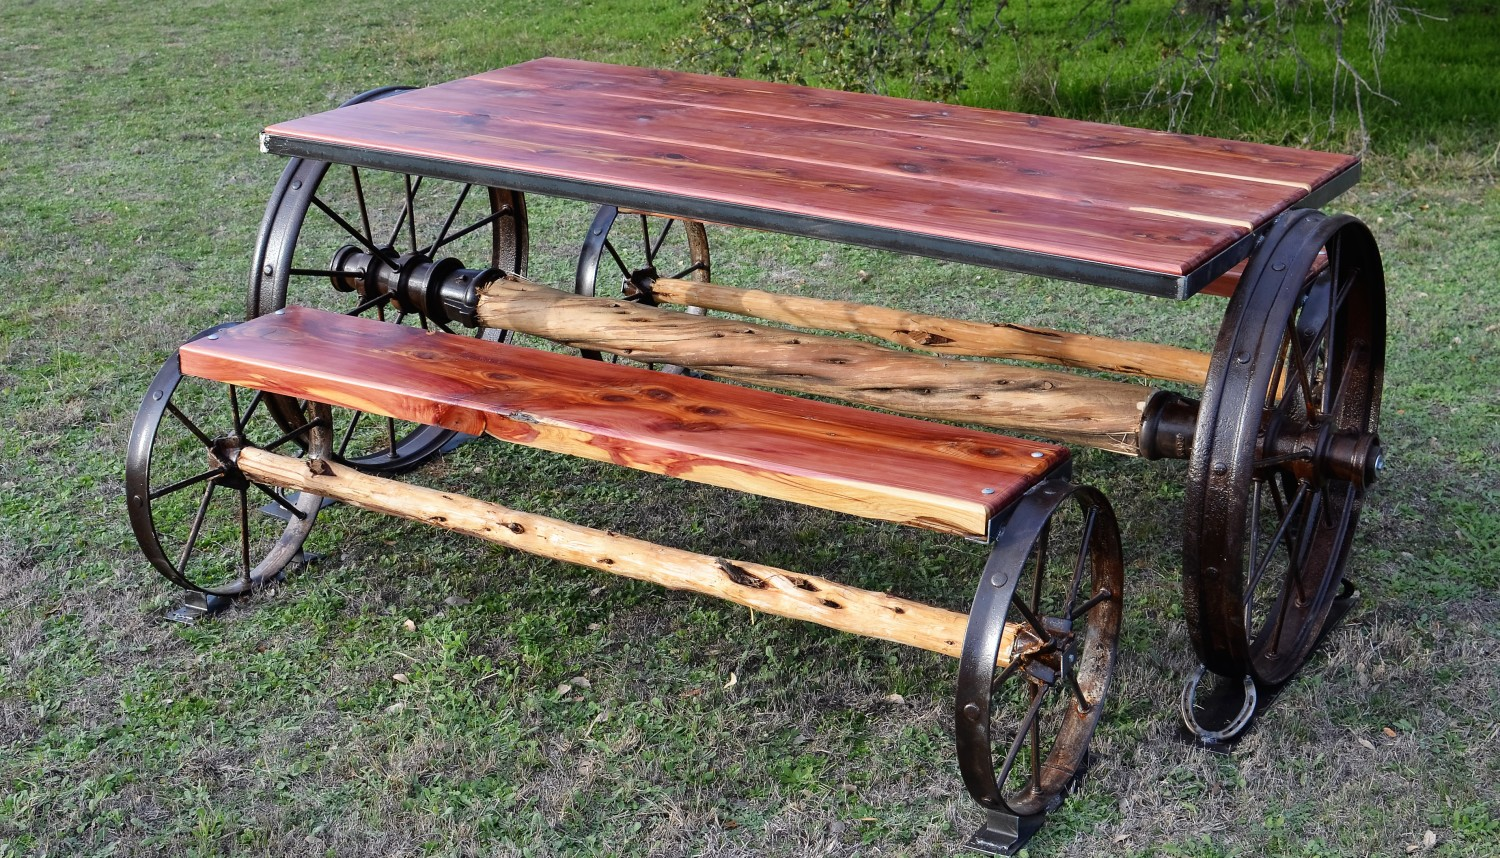 Sycamore creek creations rustic ranch style home decor for Carros de madera para jardin